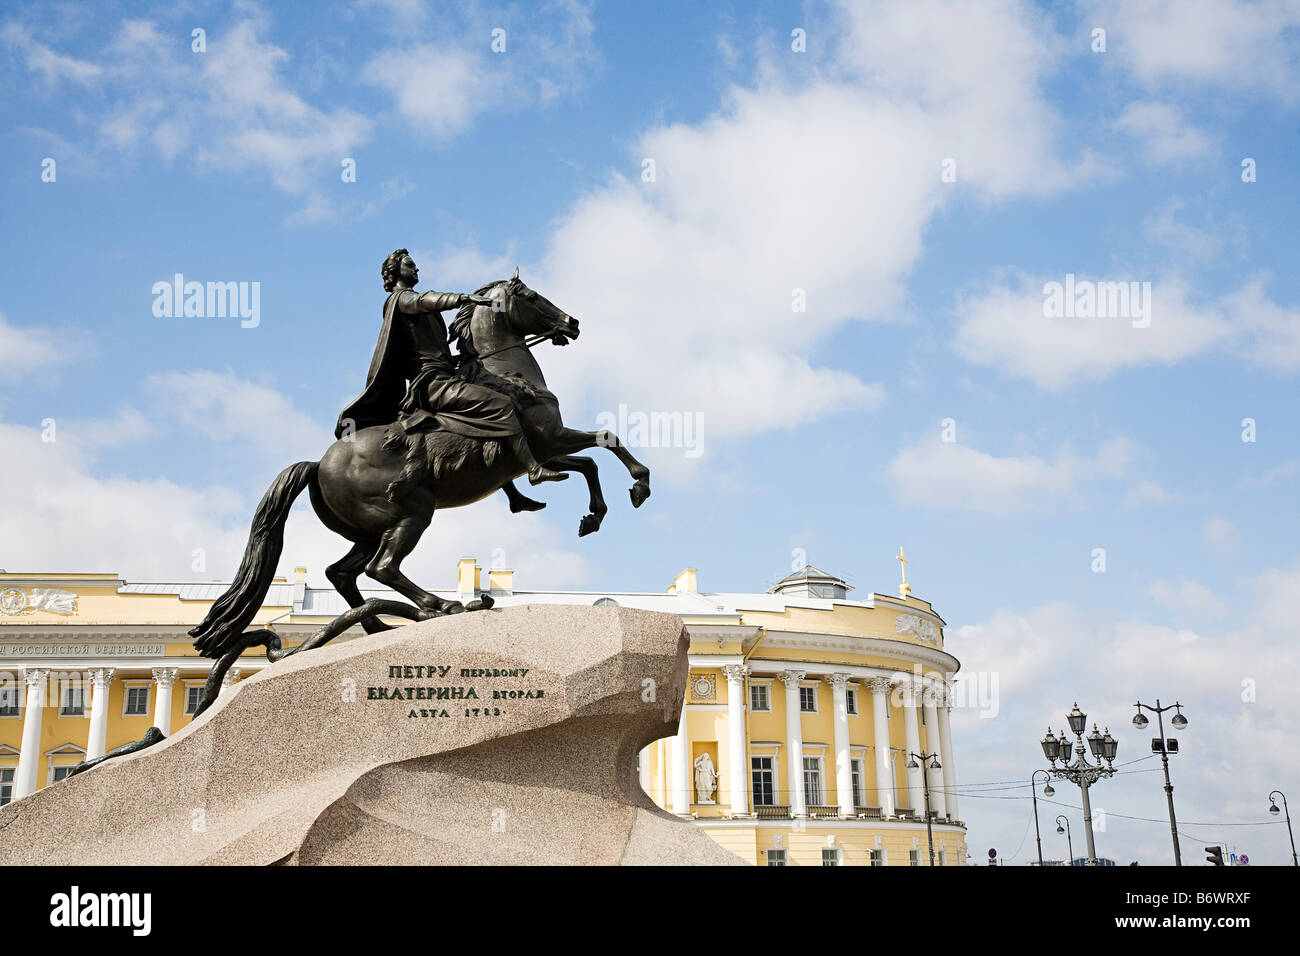 Peter the great monument in st petersburg - Stock Image